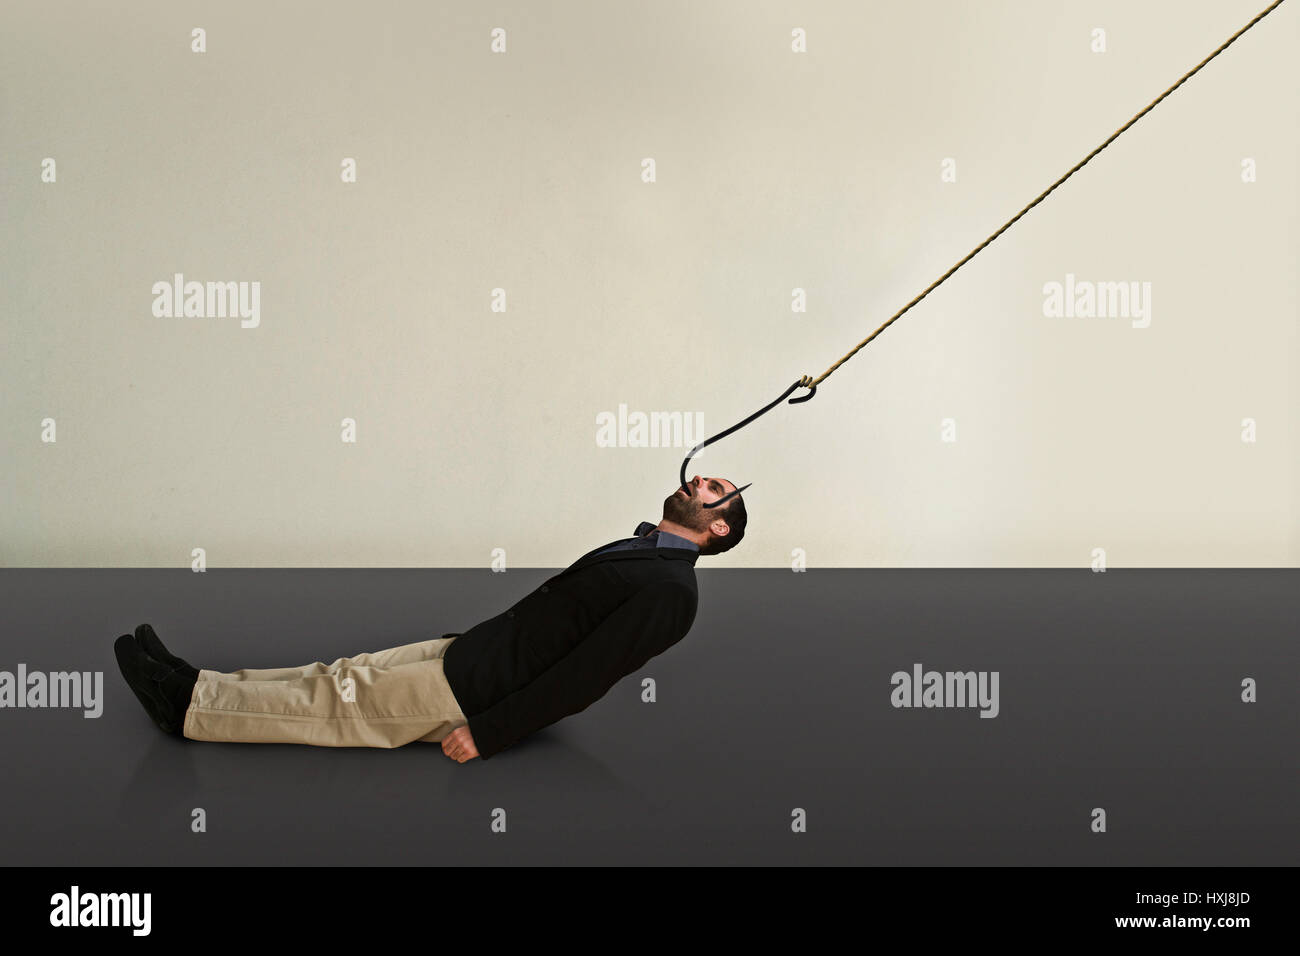 A hooked business man is dragged somewhere. - Stock Image